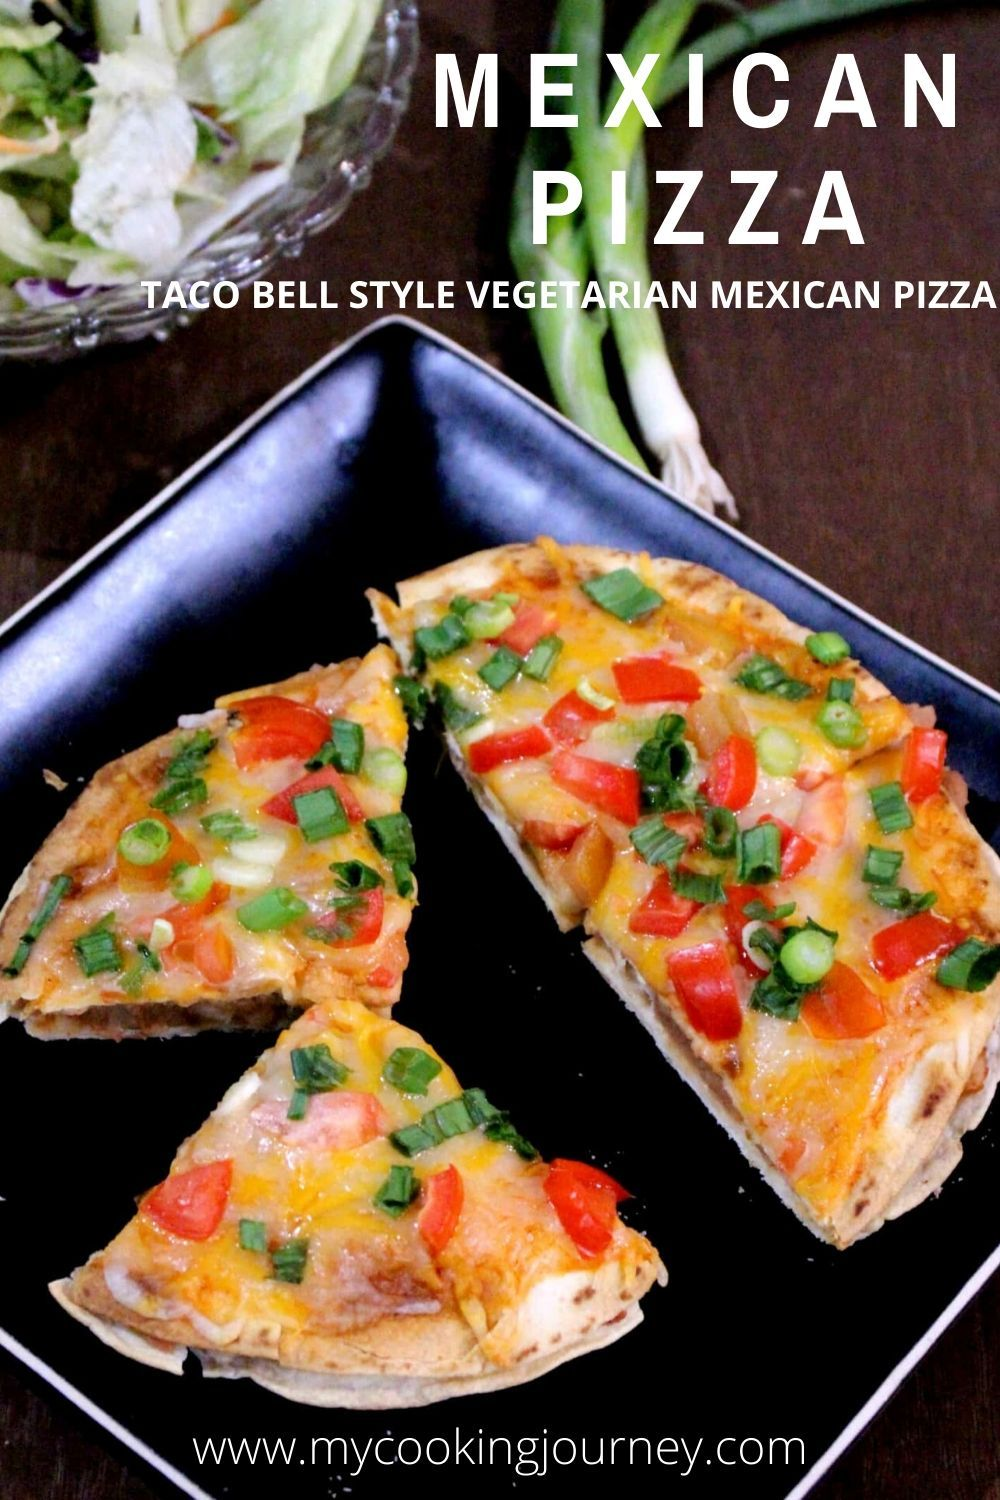 Mexican pizza taco bell style vegetarian mexican pizza